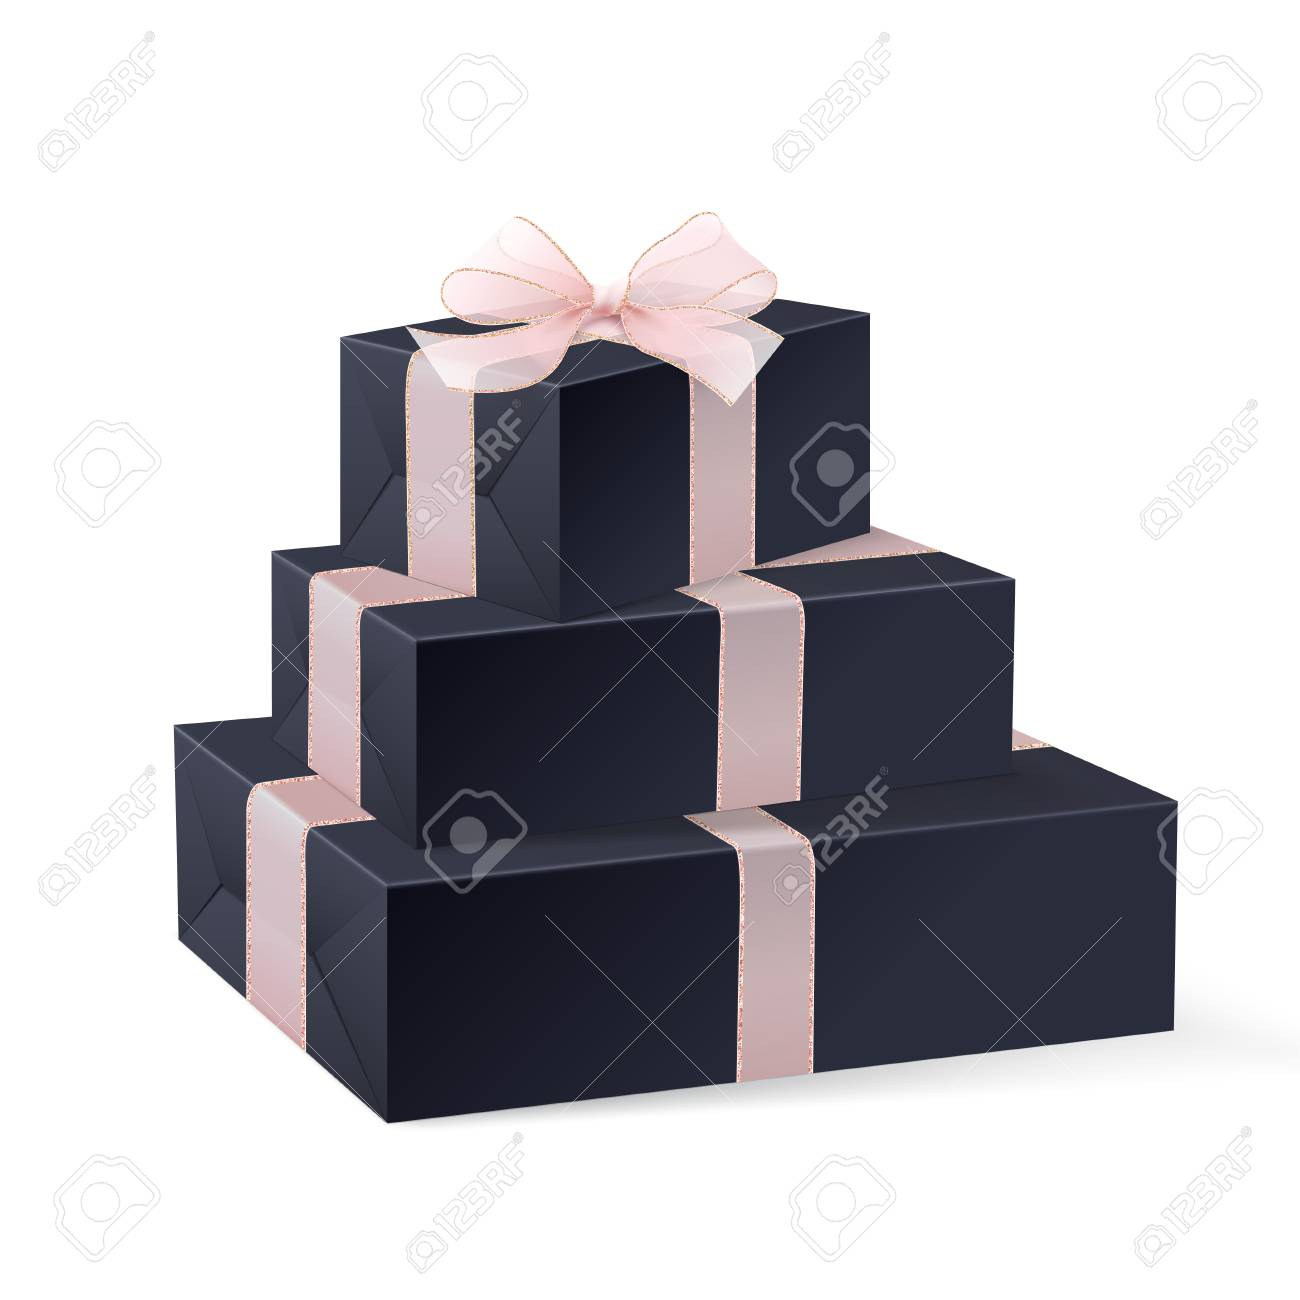 Black Gift Boxes Stack Of Three Realistic Black Gift Boxes With Pink Ribbon And